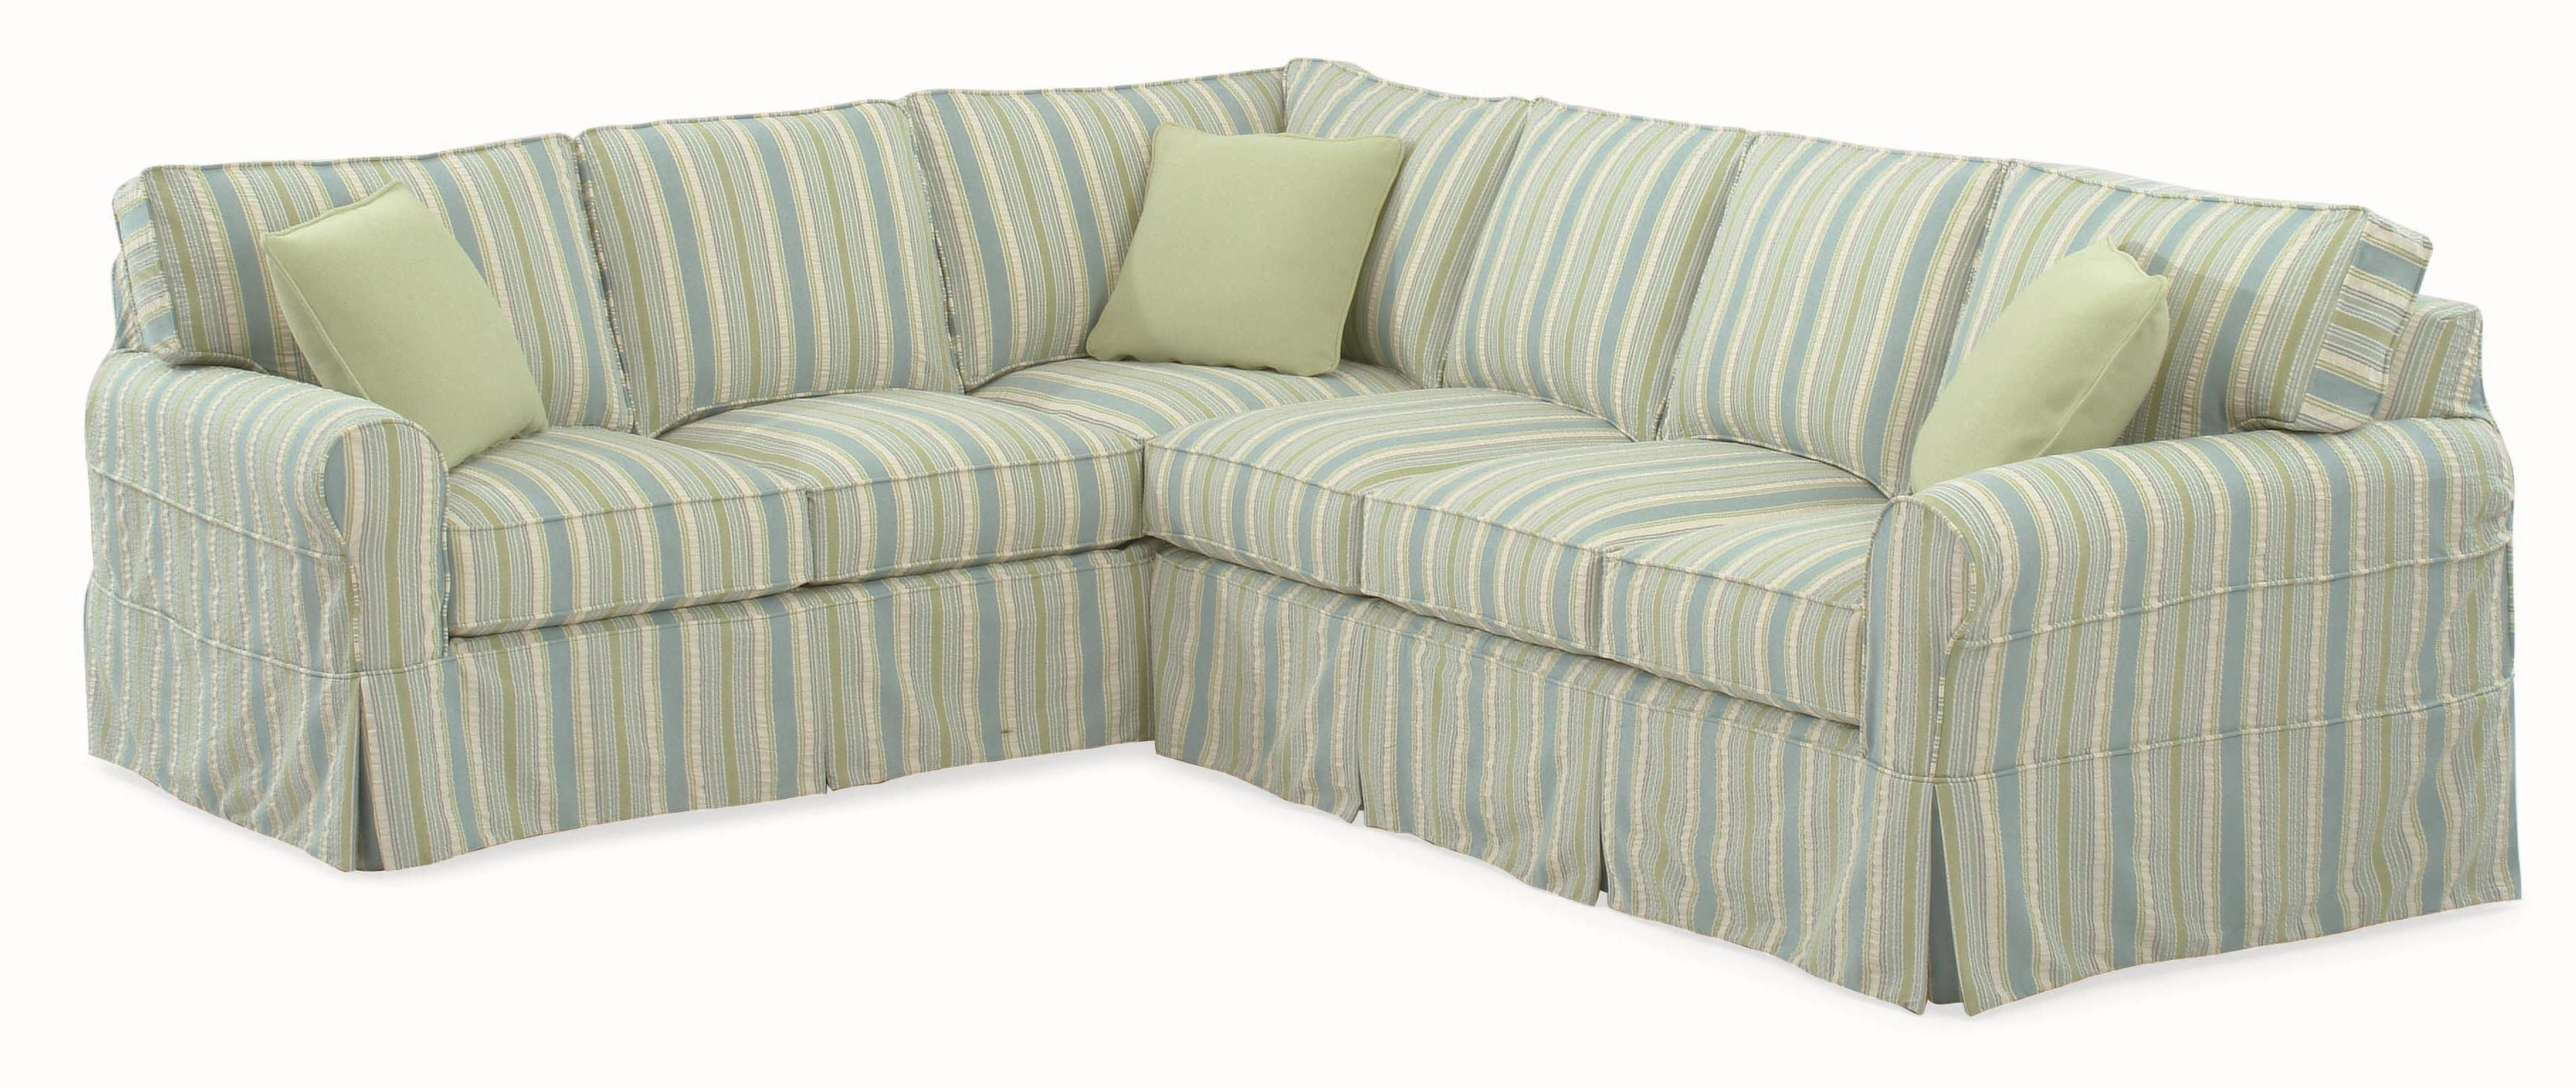 Sectional Sofa Covers | Aifaresidency regarding Sectional Sofas With Covers (Image 11 of 15)